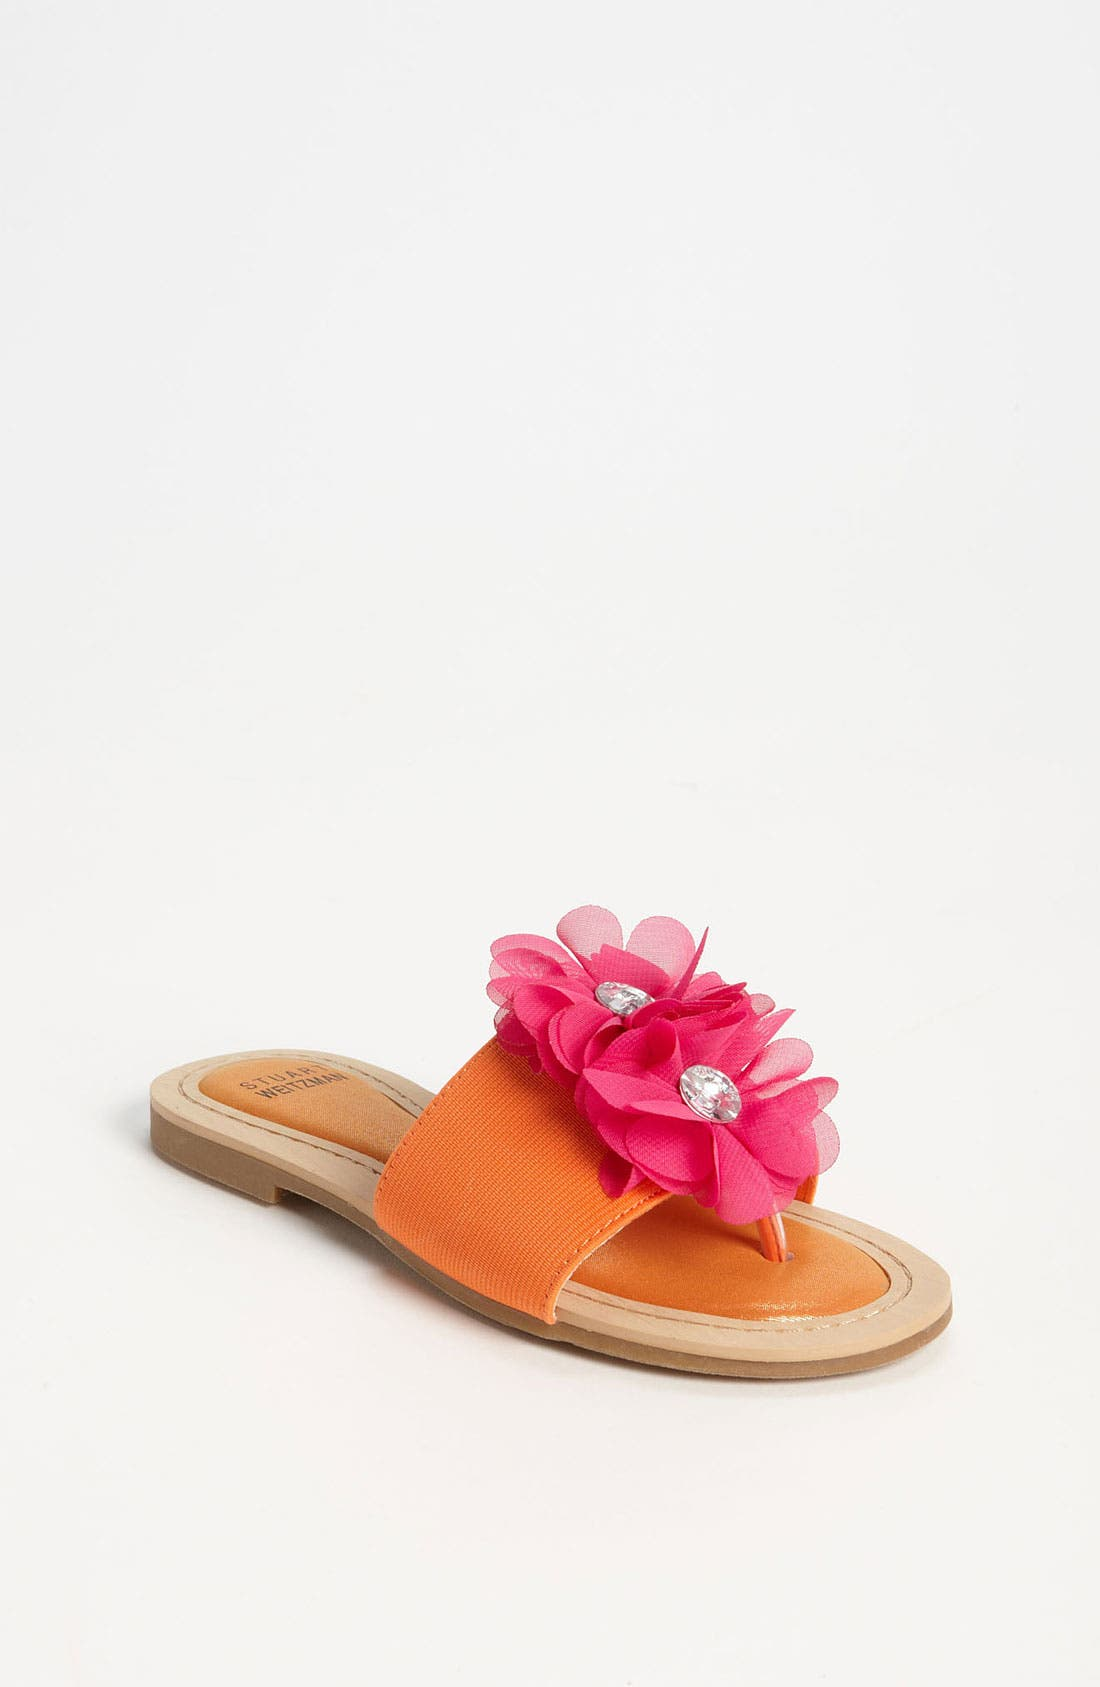 Alternate Image 1 Selected - Stuart Weitzman 'Rosewater' Sandal (Toddler, Little Kid & Big Kid)